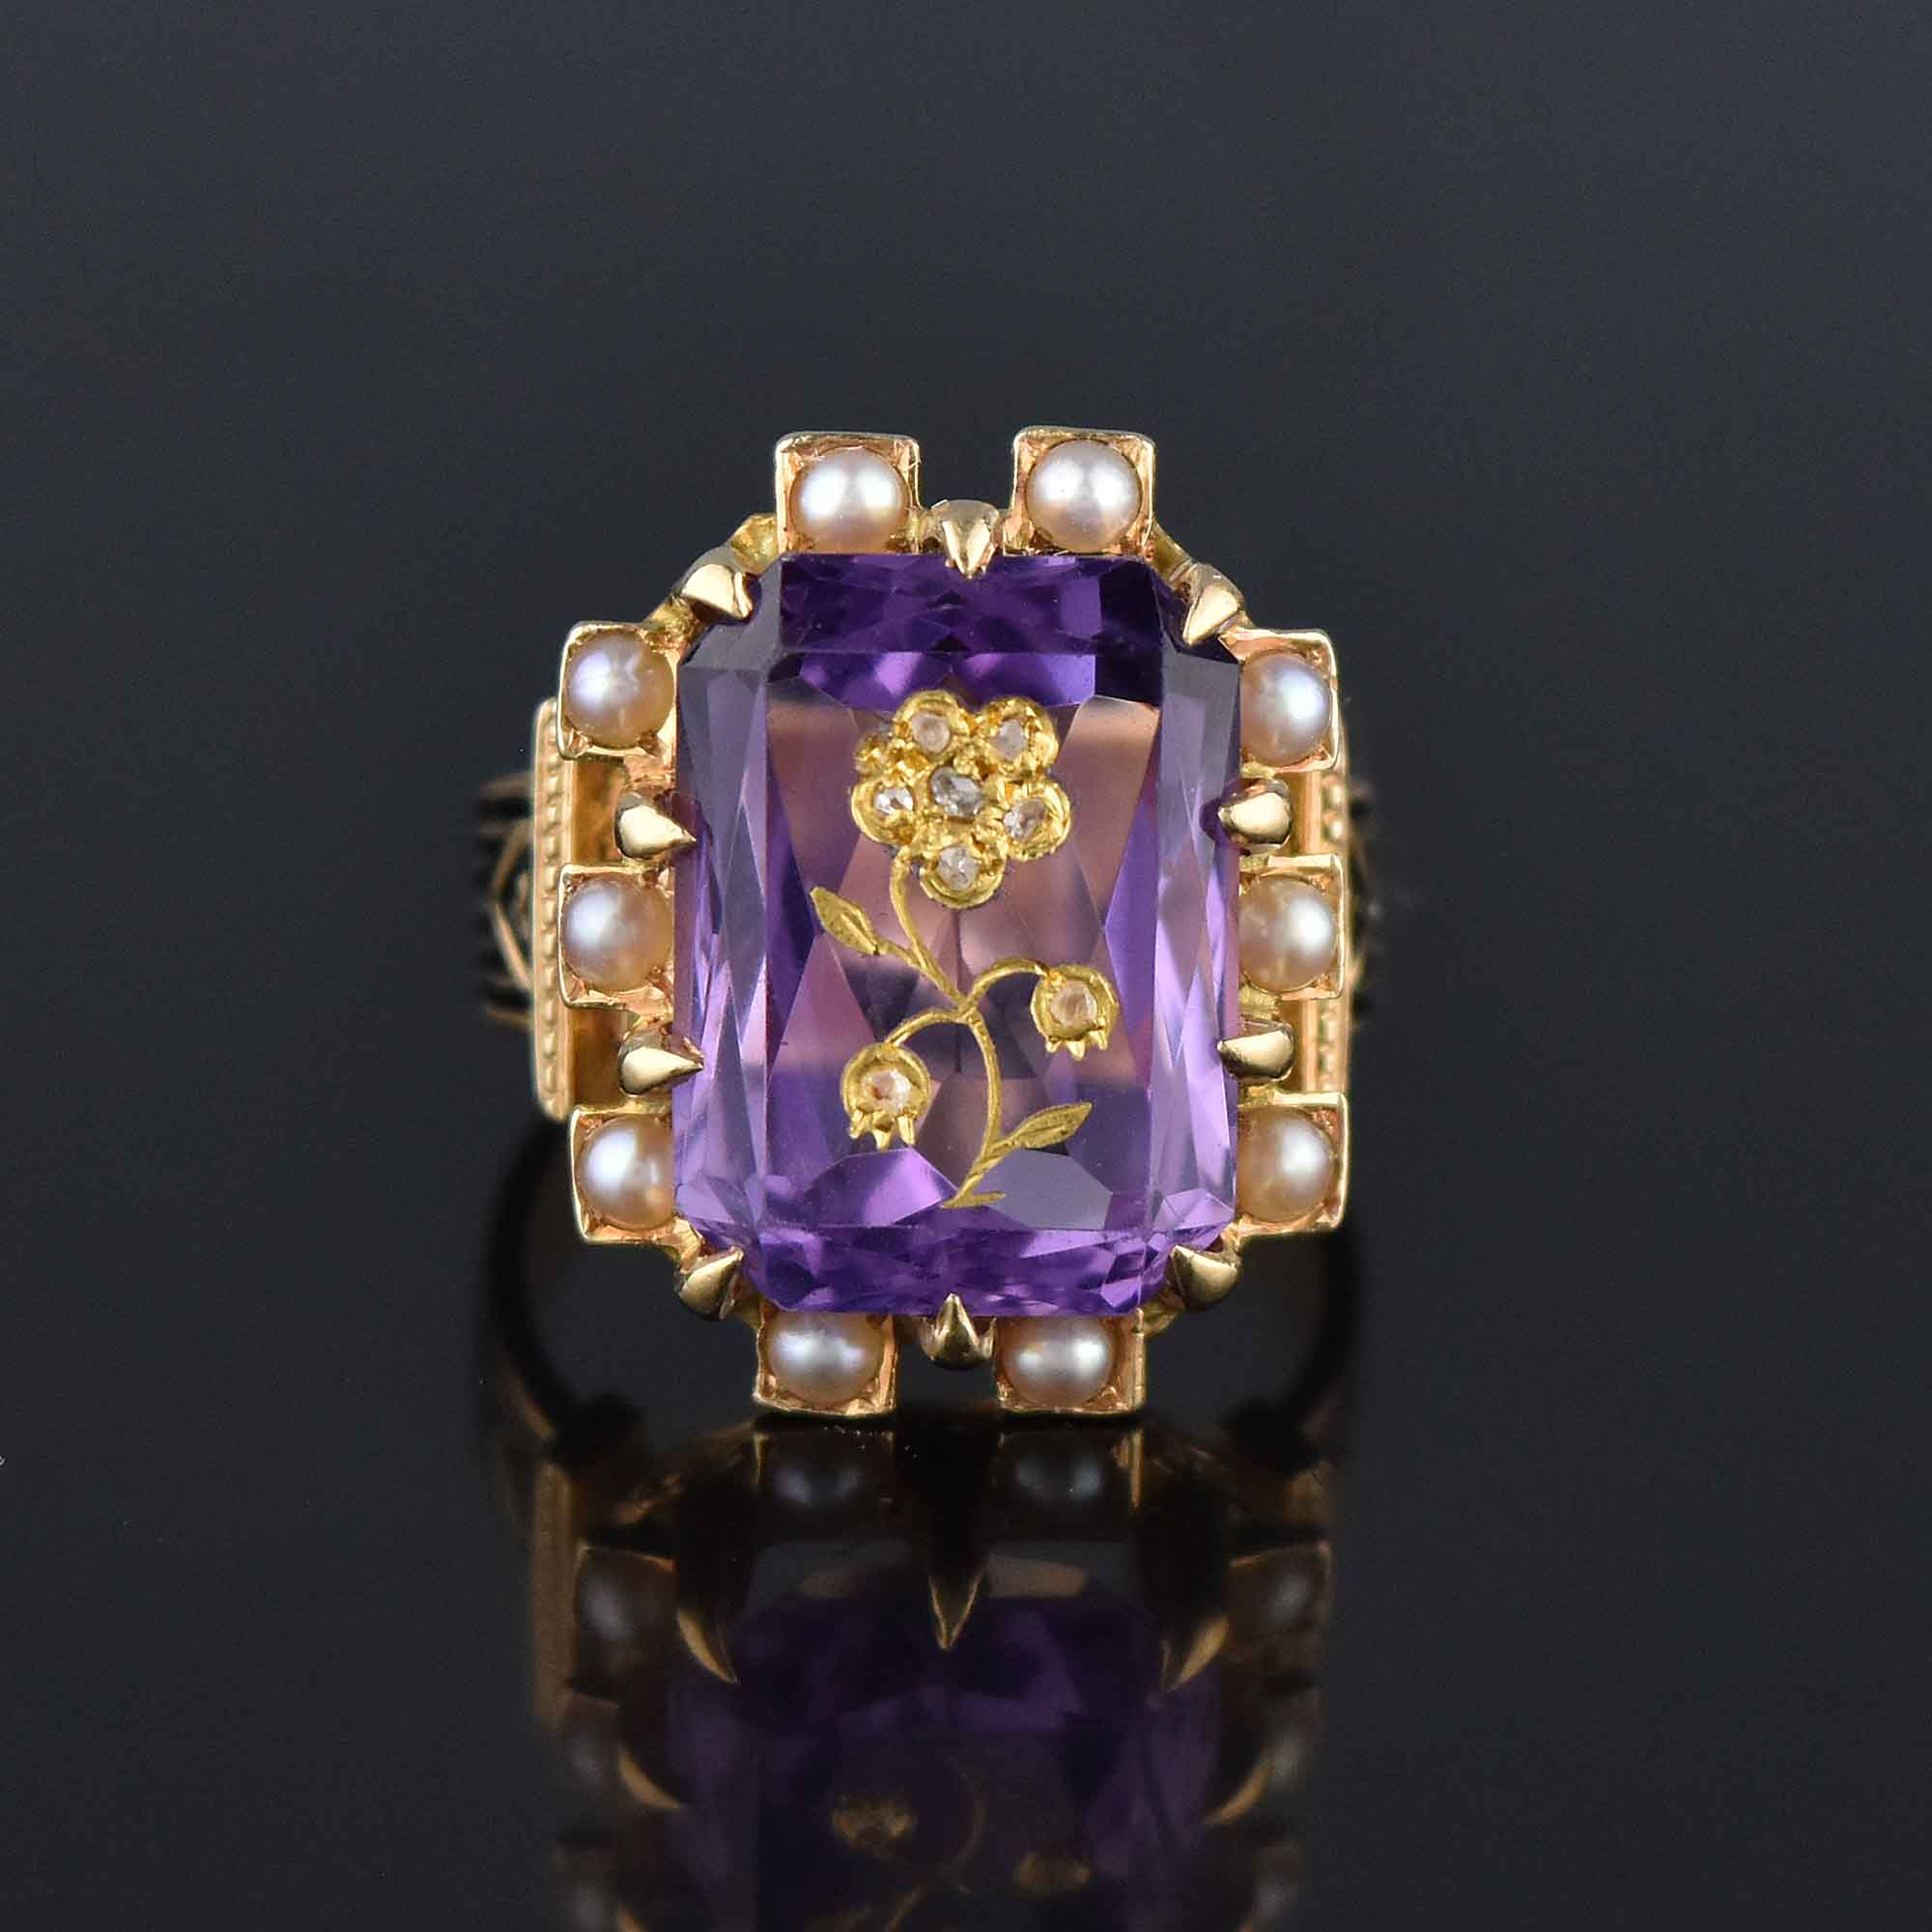 EXQUISITE HAND CRAFTED ANTIQUE RINGS!